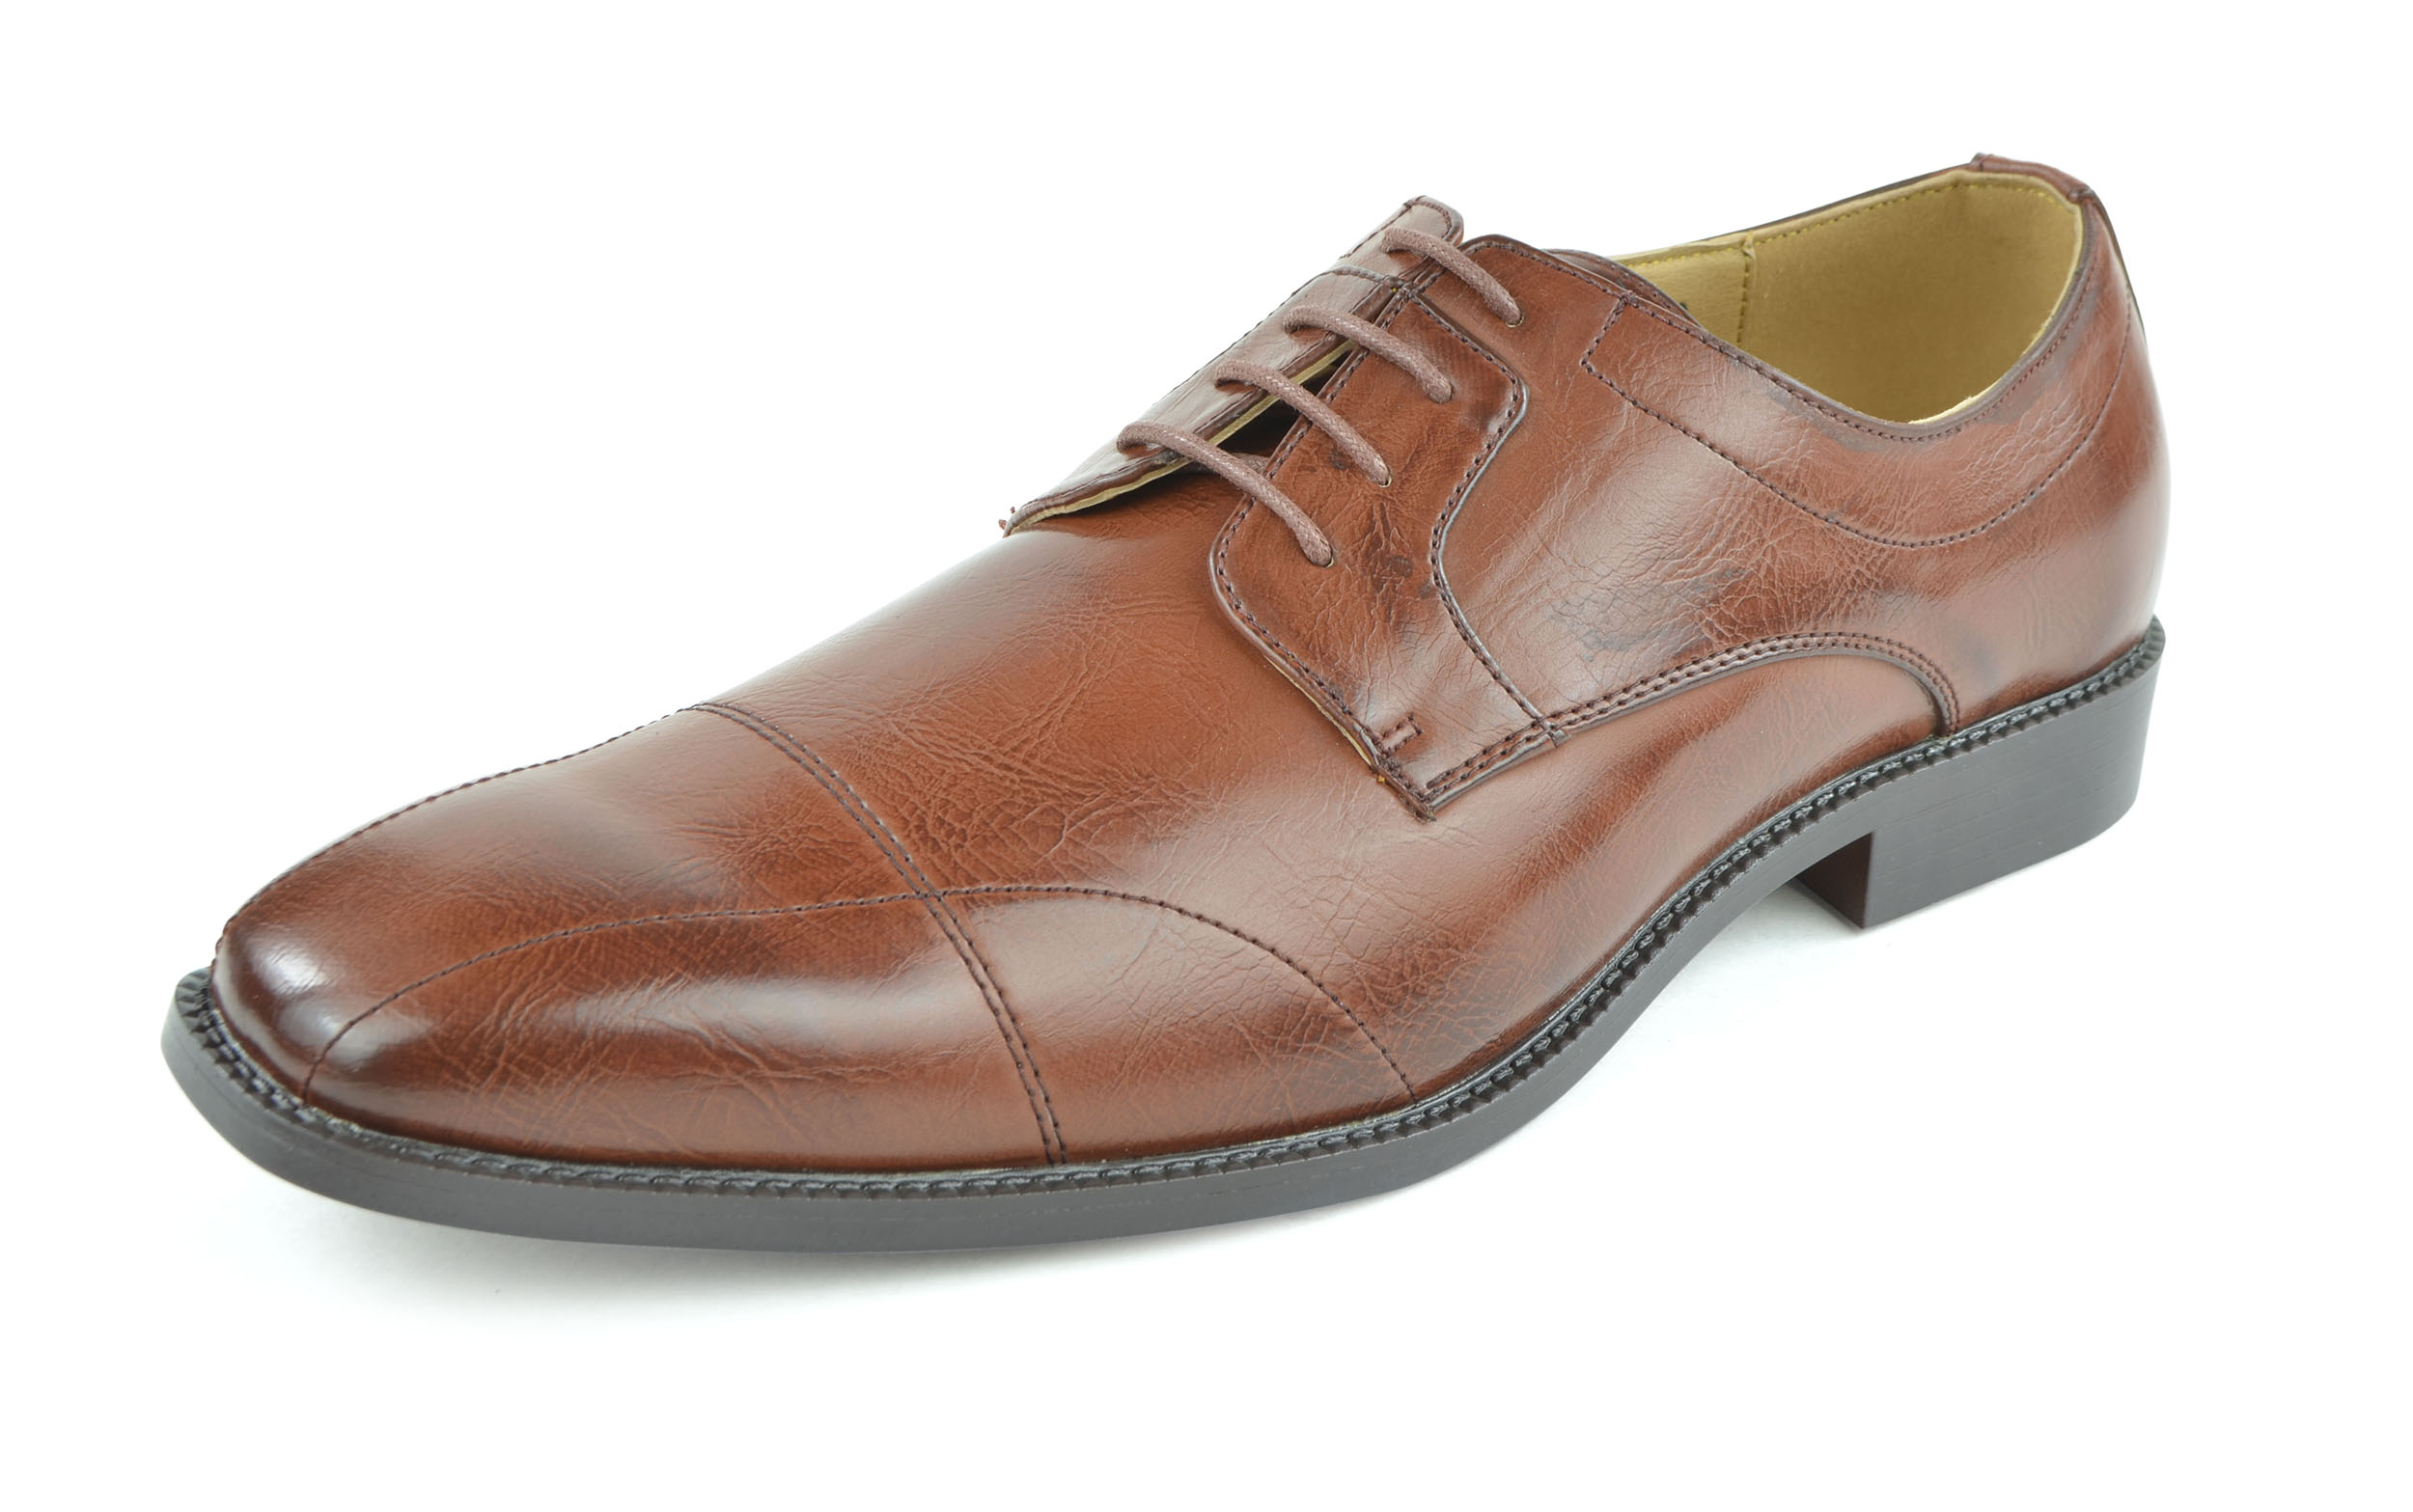 Moda Di Raza - Men's Modern Sleek Oxford Lace Shoes - Cognac - 6569/ Size: 11